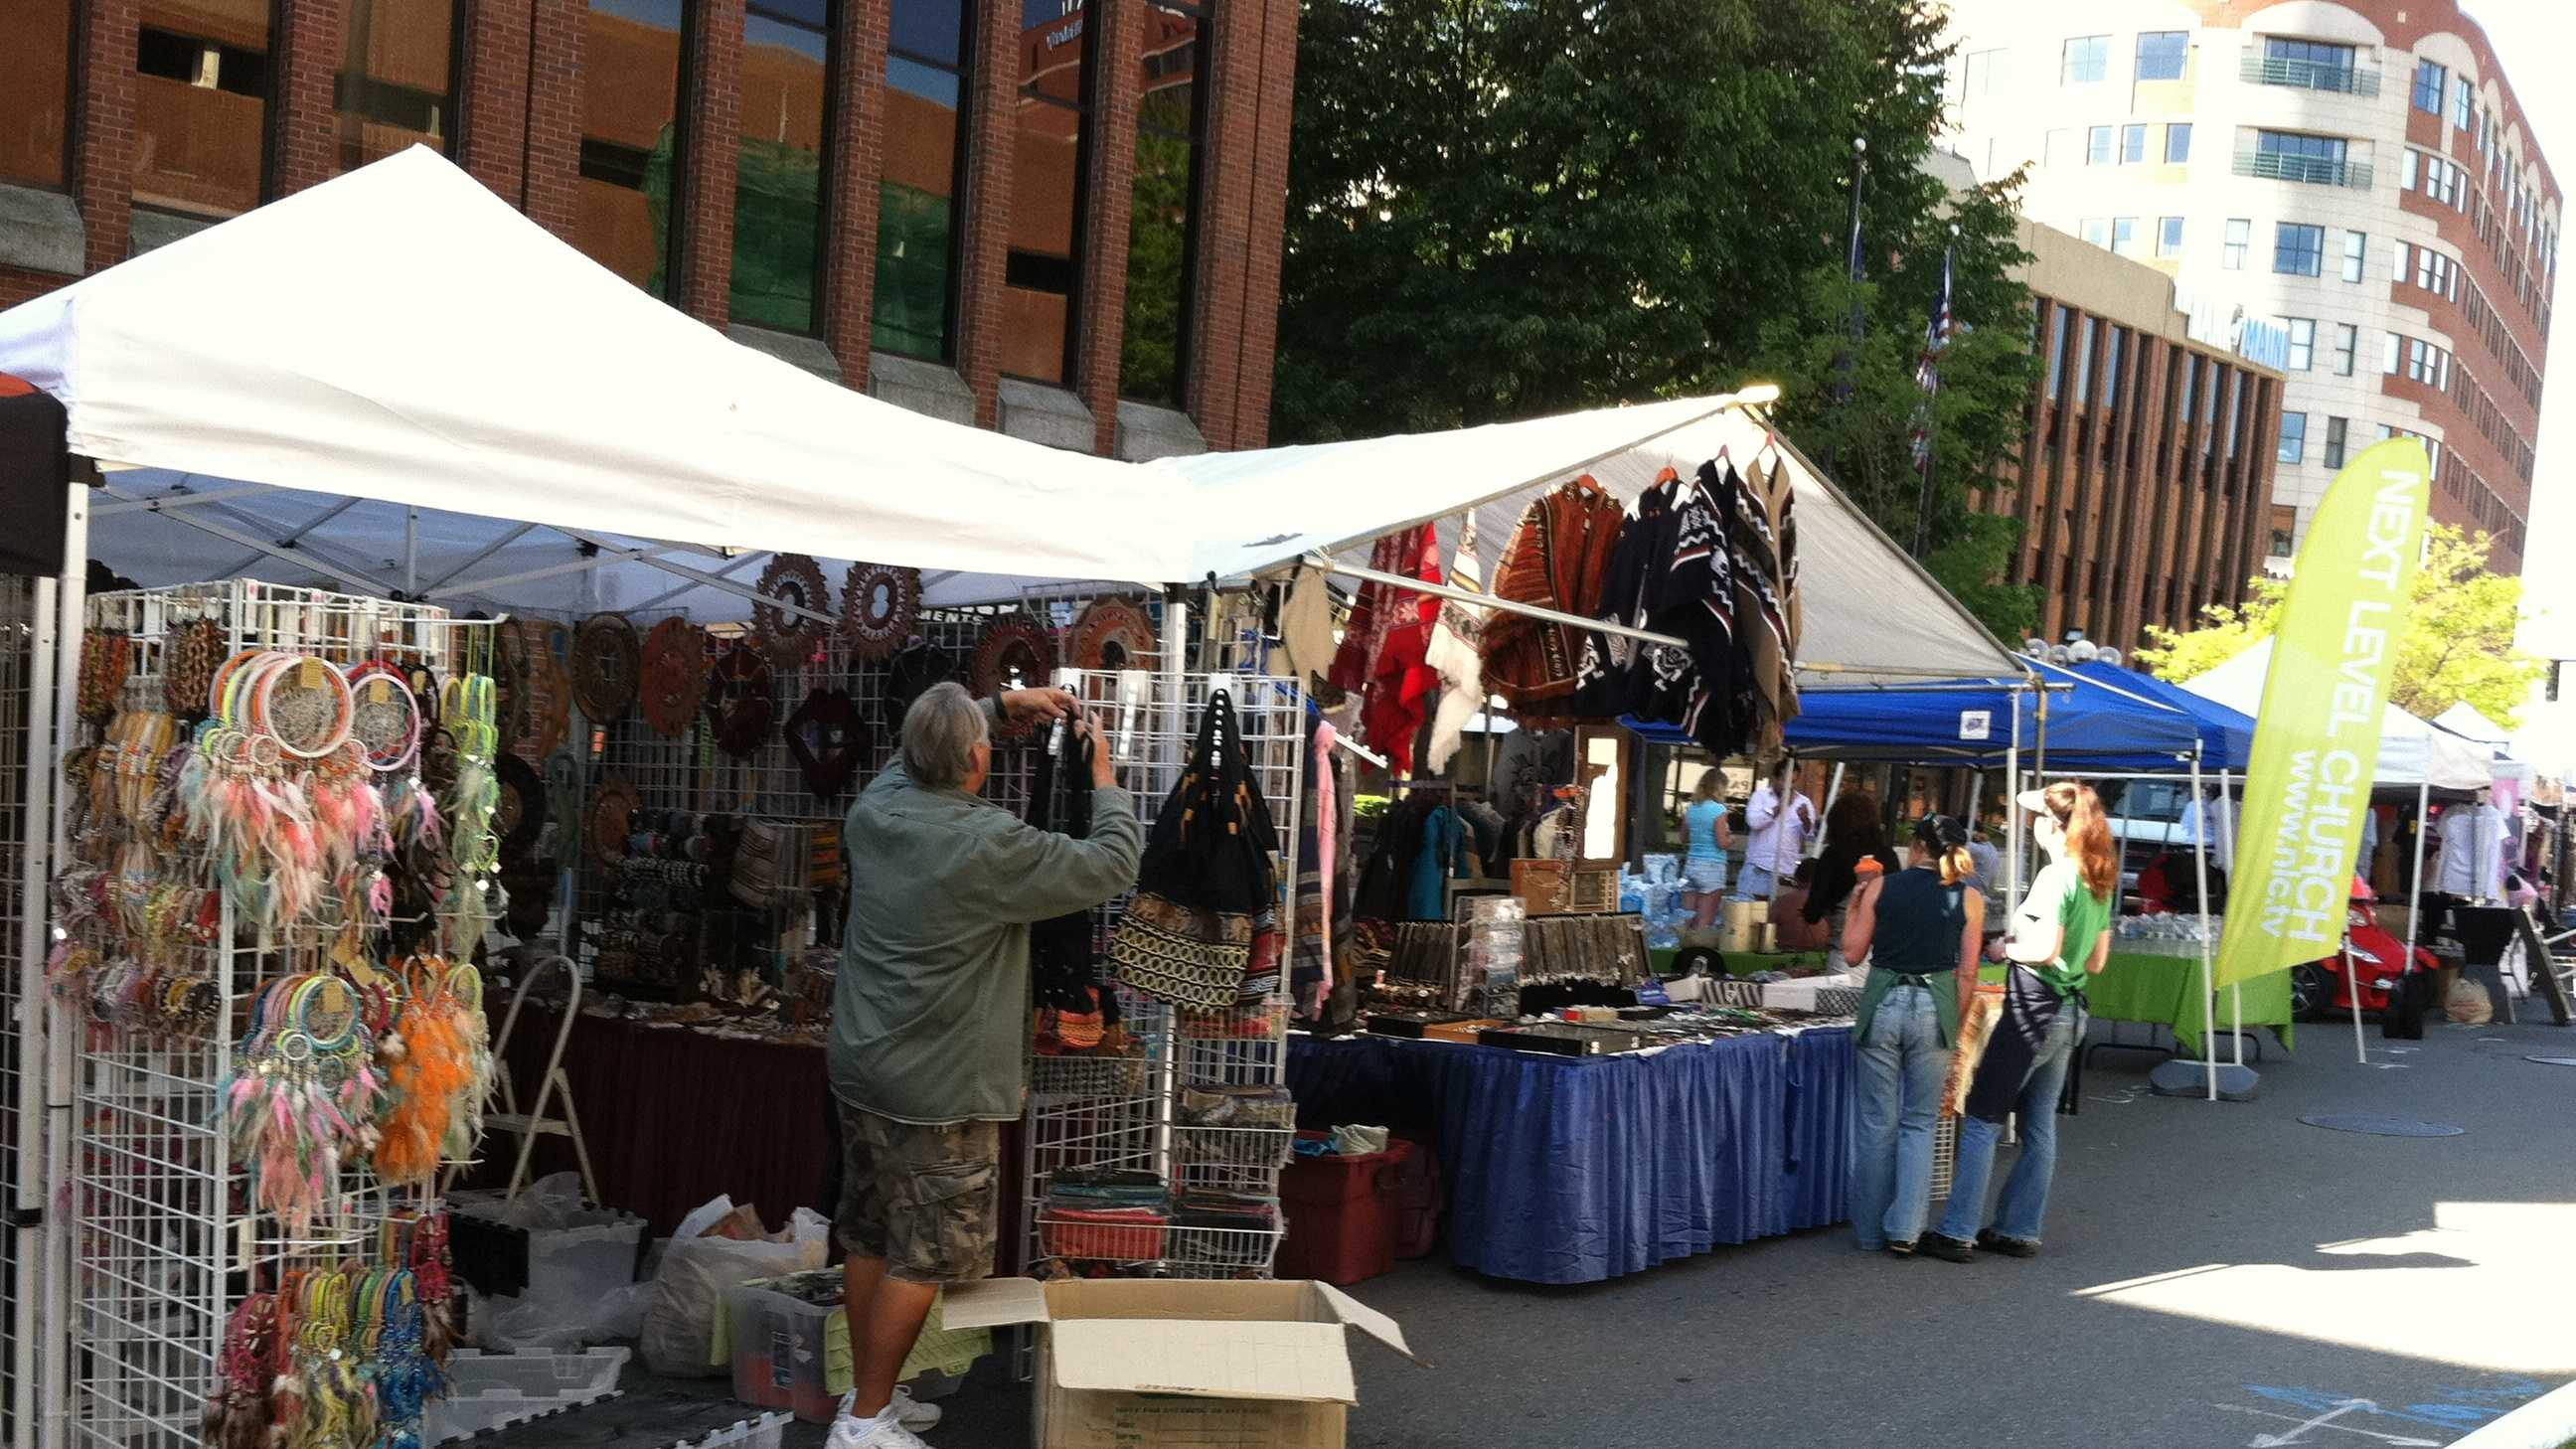 Old Port Festival runs from 11 a.m. - 5 p.m.